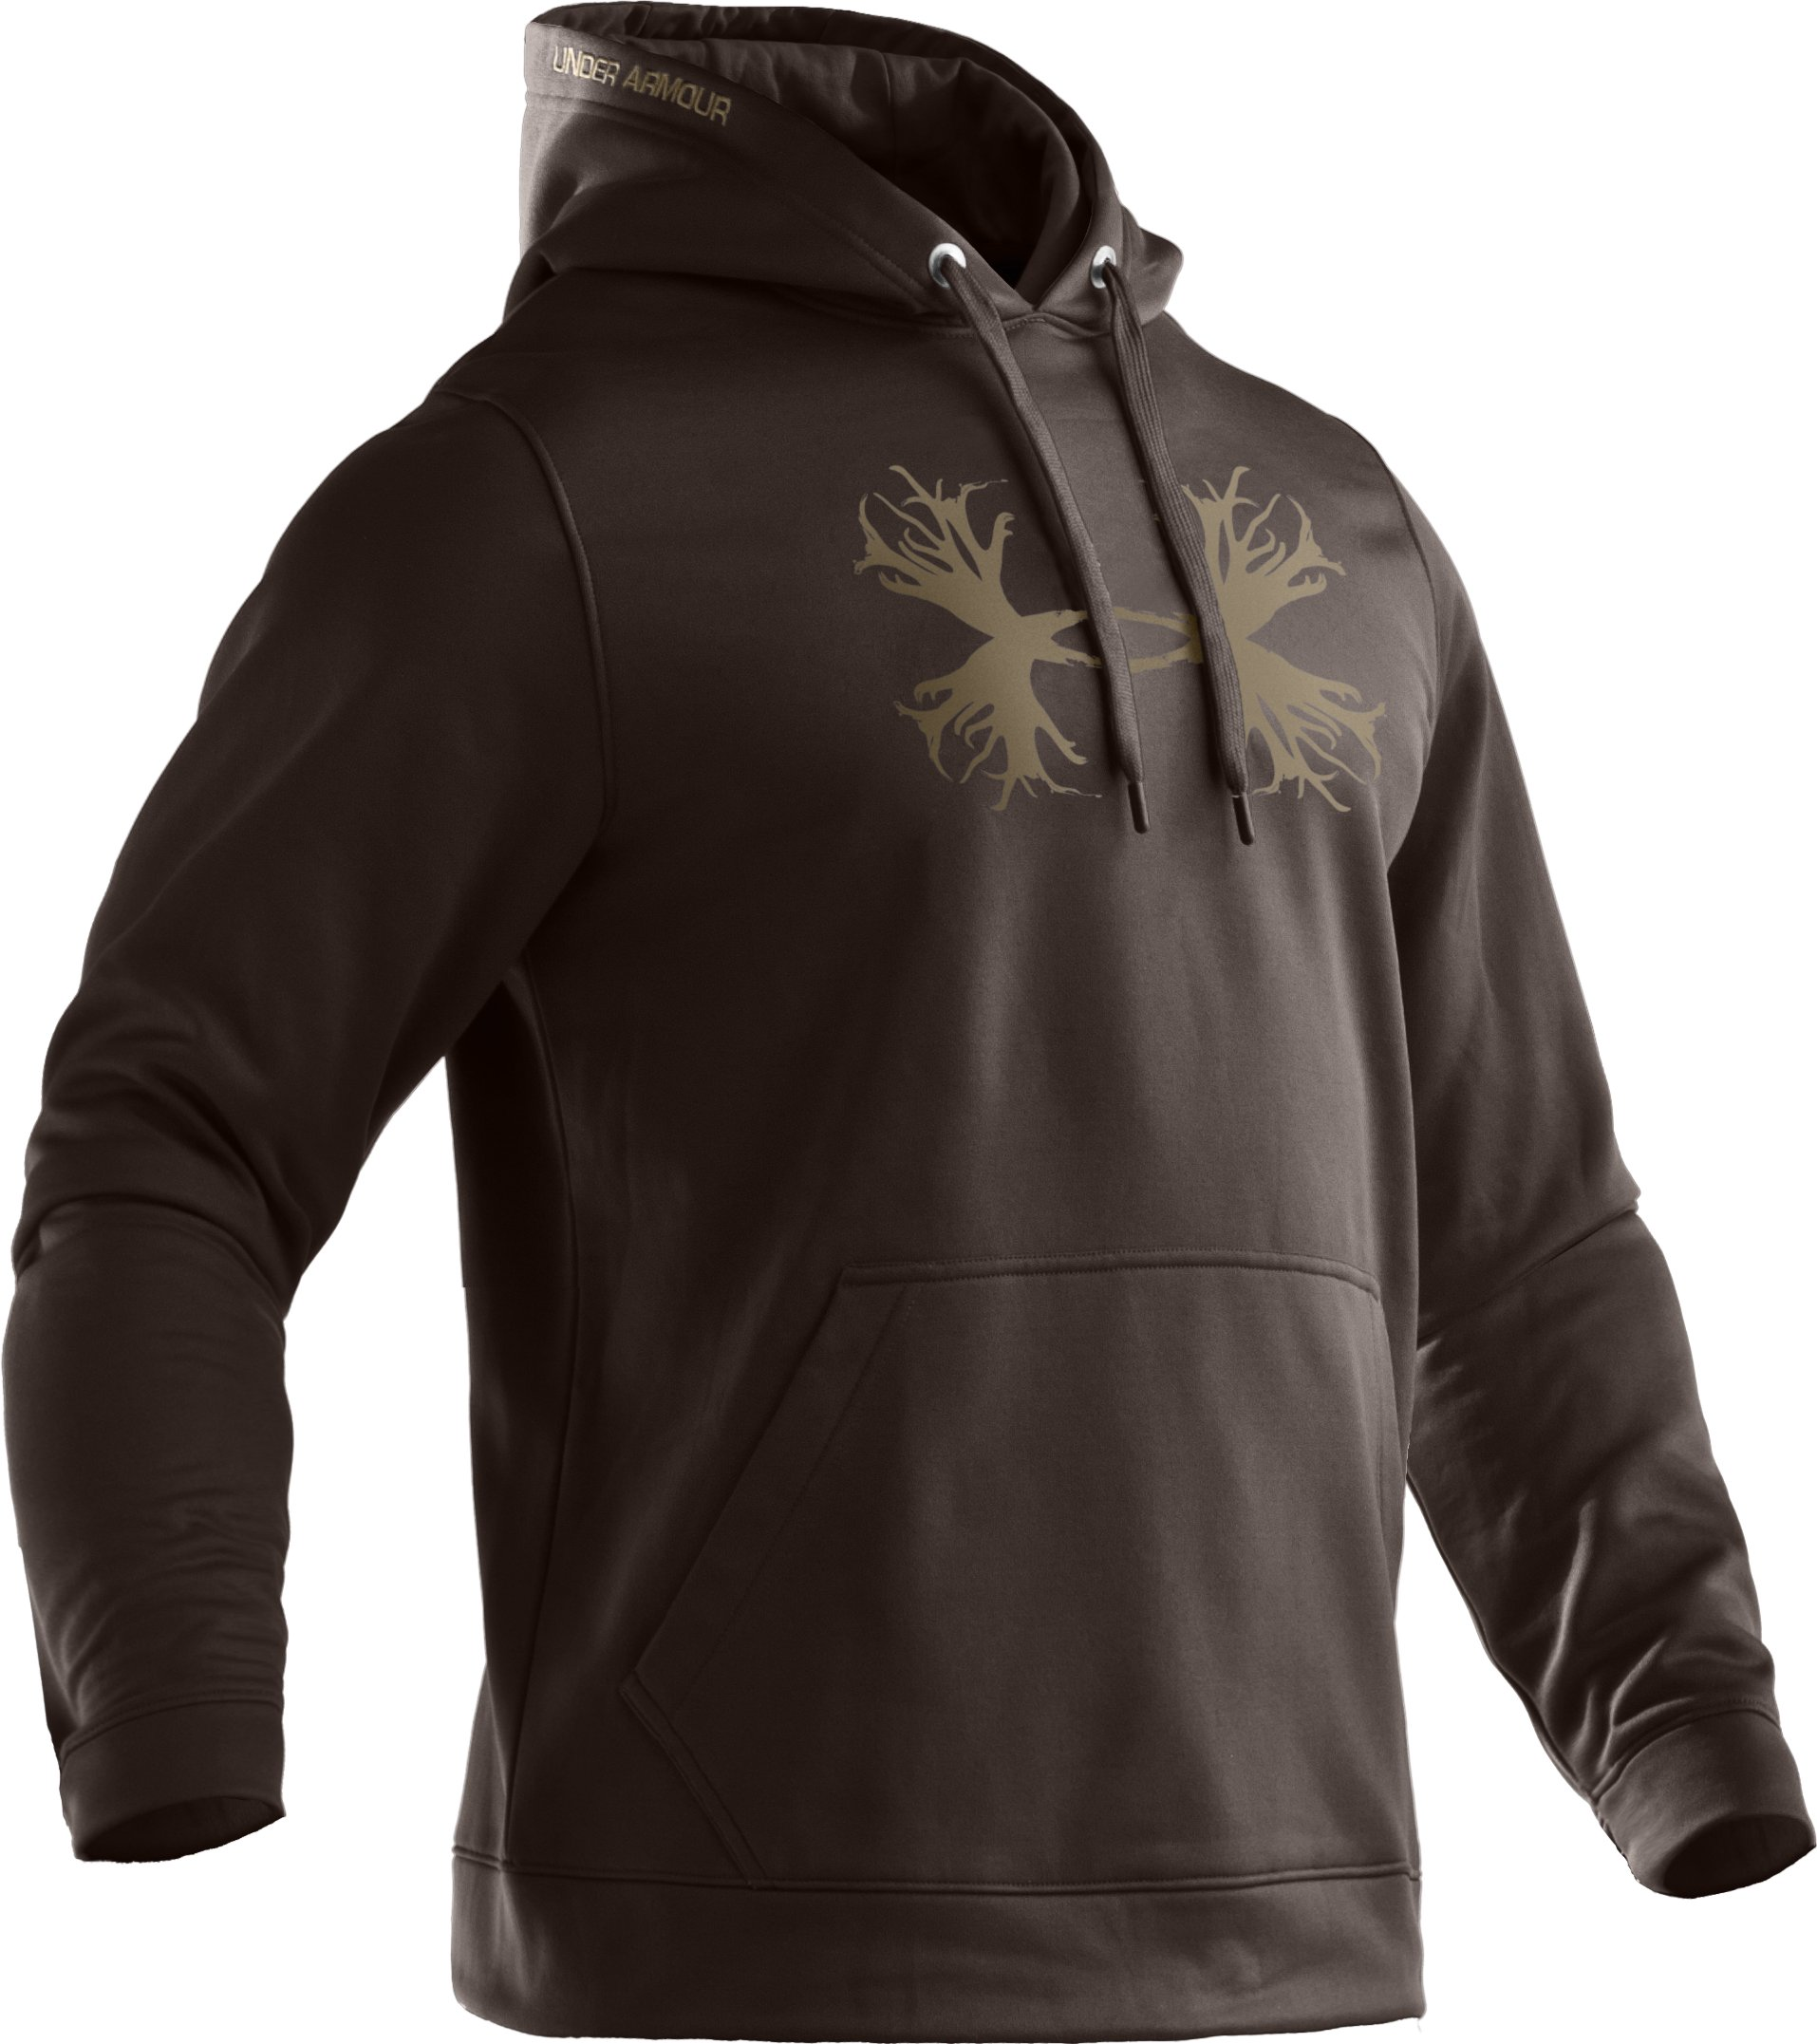 Men's Armour Fleece® Storm Solid Antler Hoodie, Bureau, undefined